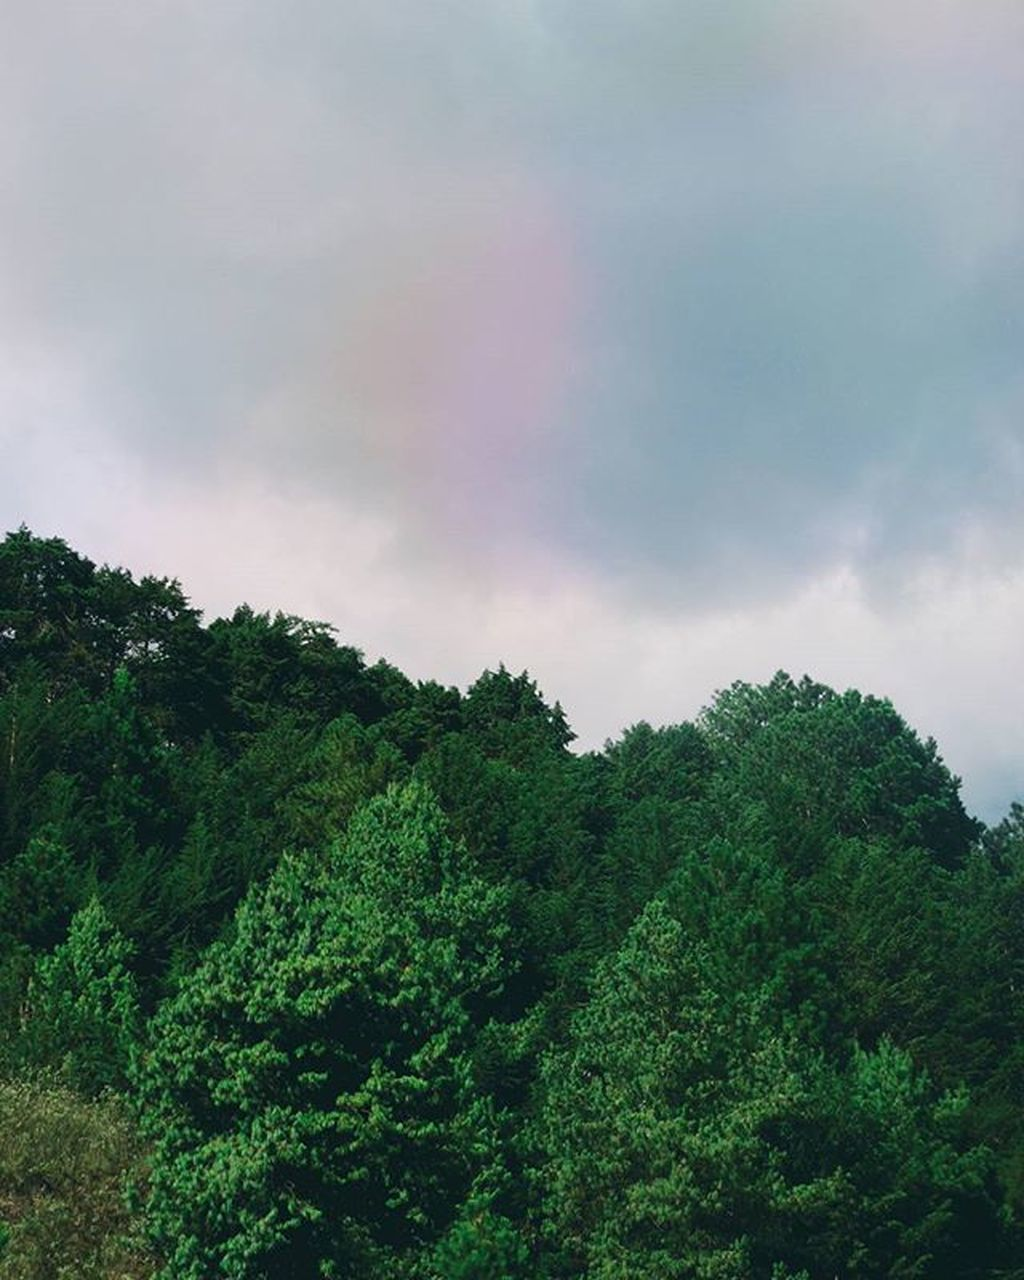 tree, nature, sky, beauty in nature, growth, green color, no people, low angle view, rainbow, outdoors, day, cloud - sky, scenics, forest